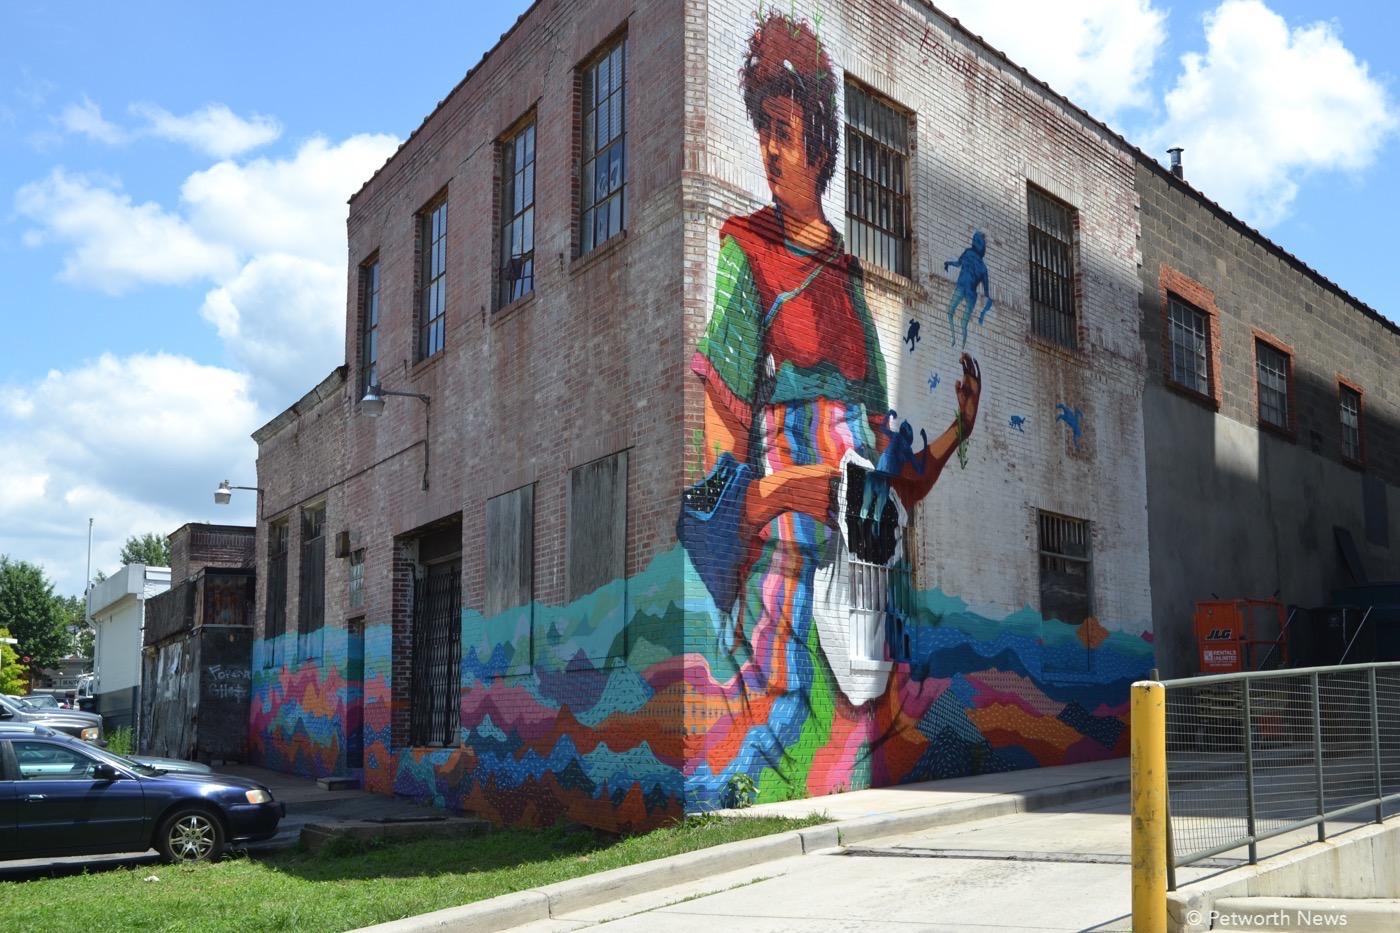 An old building becomes the canvas for mother earth